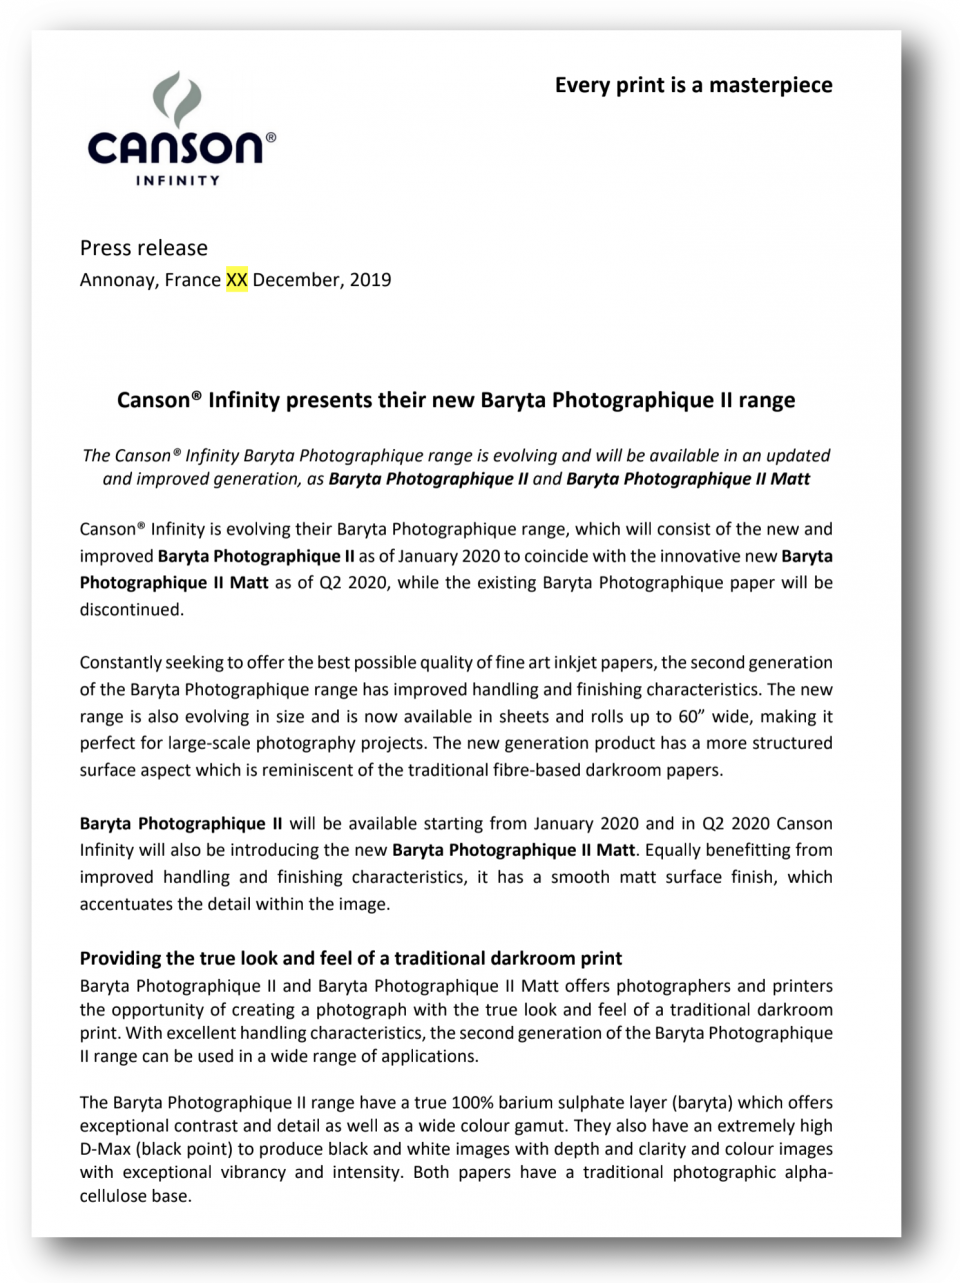 Canson's press release regarding their new Canson Infinity Baryta Photographique II